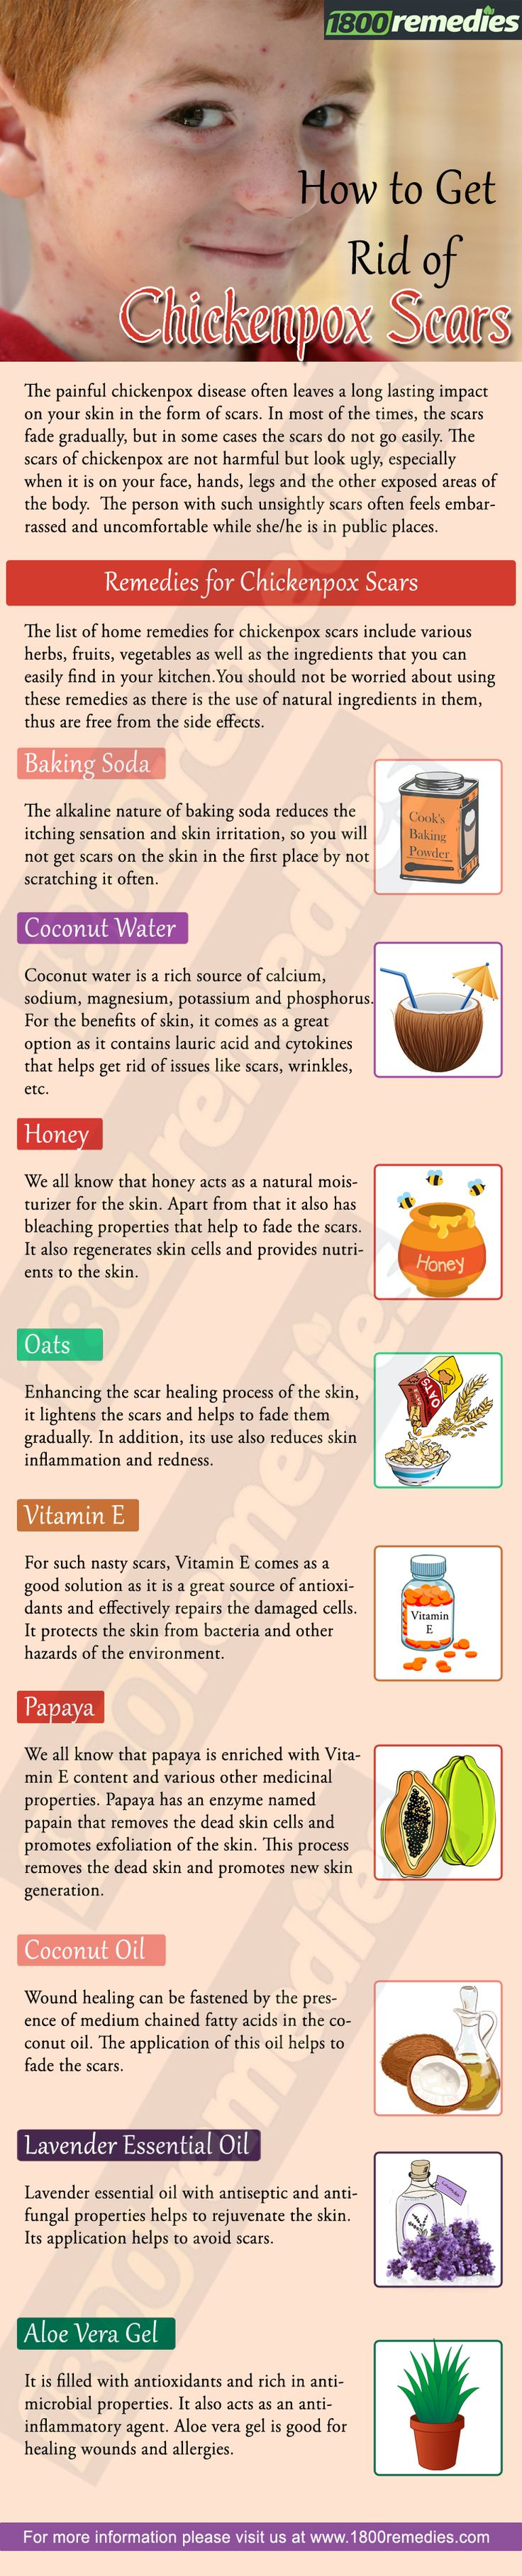 The list of home remedies for chickenpox scars include various herbs, fruits, vegetables as well as the ingredients that you can easily find in your kitchen.